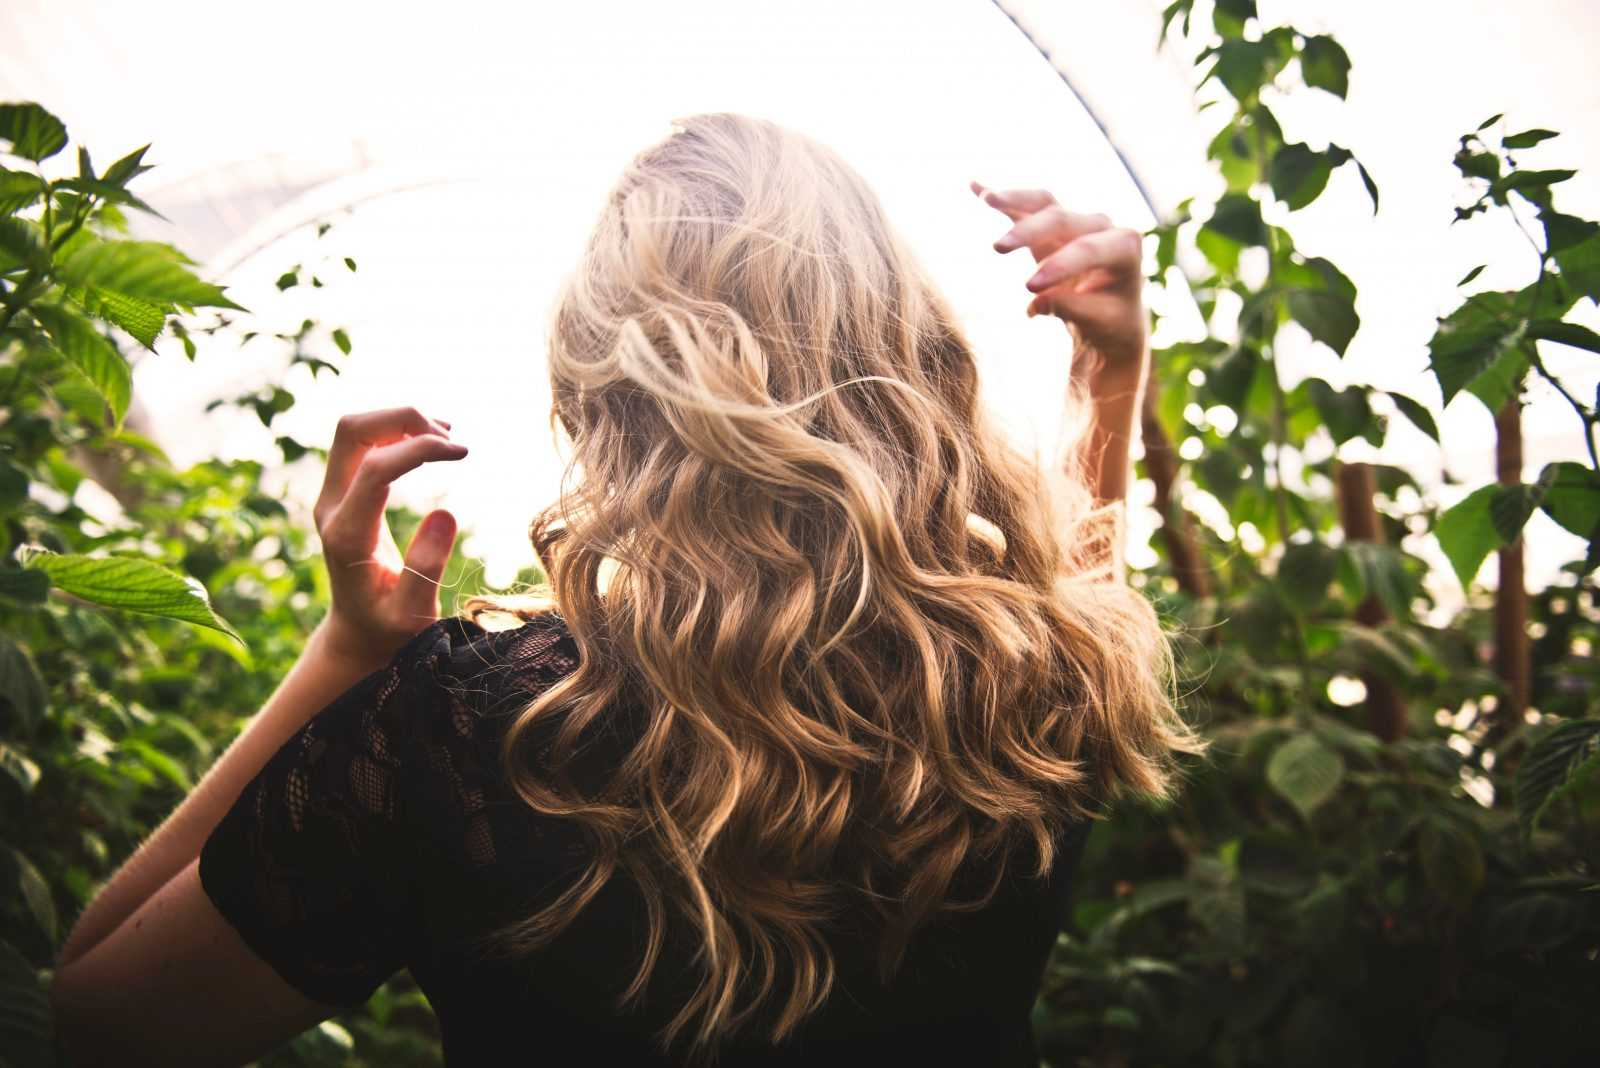 The Best Cruelty-Free, Natural Hair Care Products 1